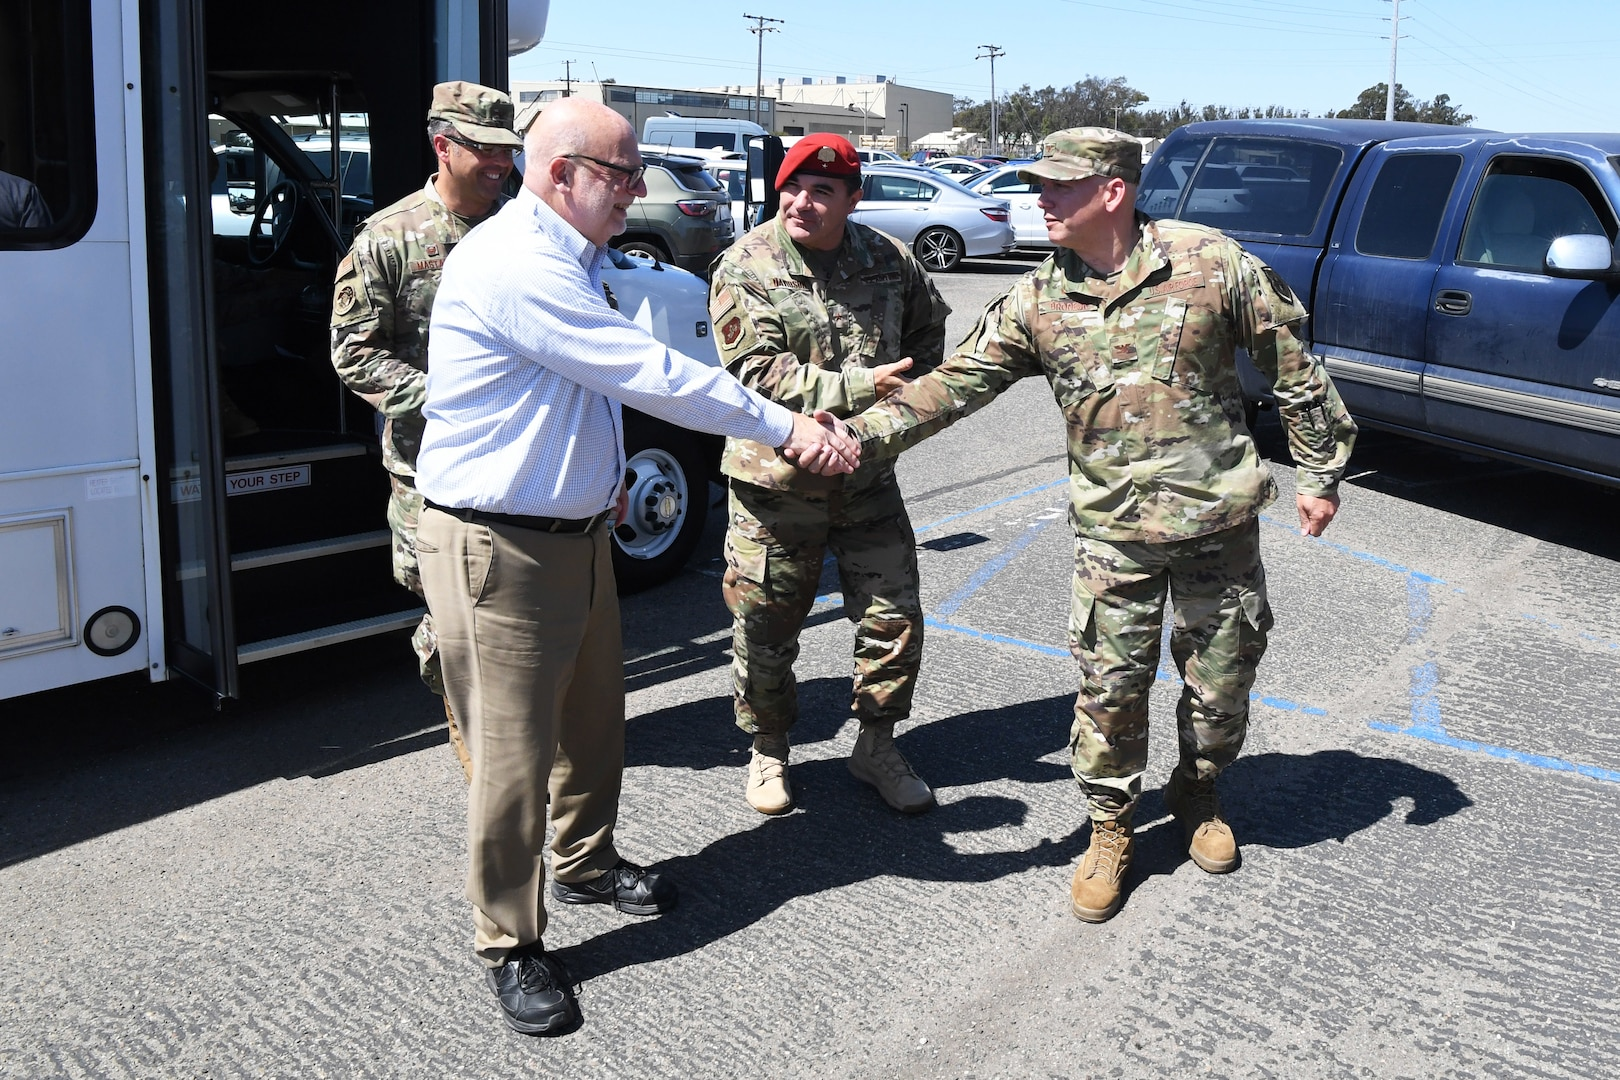 John Roth, performing the duties of the Under Secretary of the Air Force (left), is greeted by Col. Scott Brodeur, Combined Space Operations Center (CSpOC) director (right), and Brig. Gen. Matthew Davidson, 14th Air Force vice commander (center), during a visit at Vandenberg AFB, Calif., Aug. 27, 2019